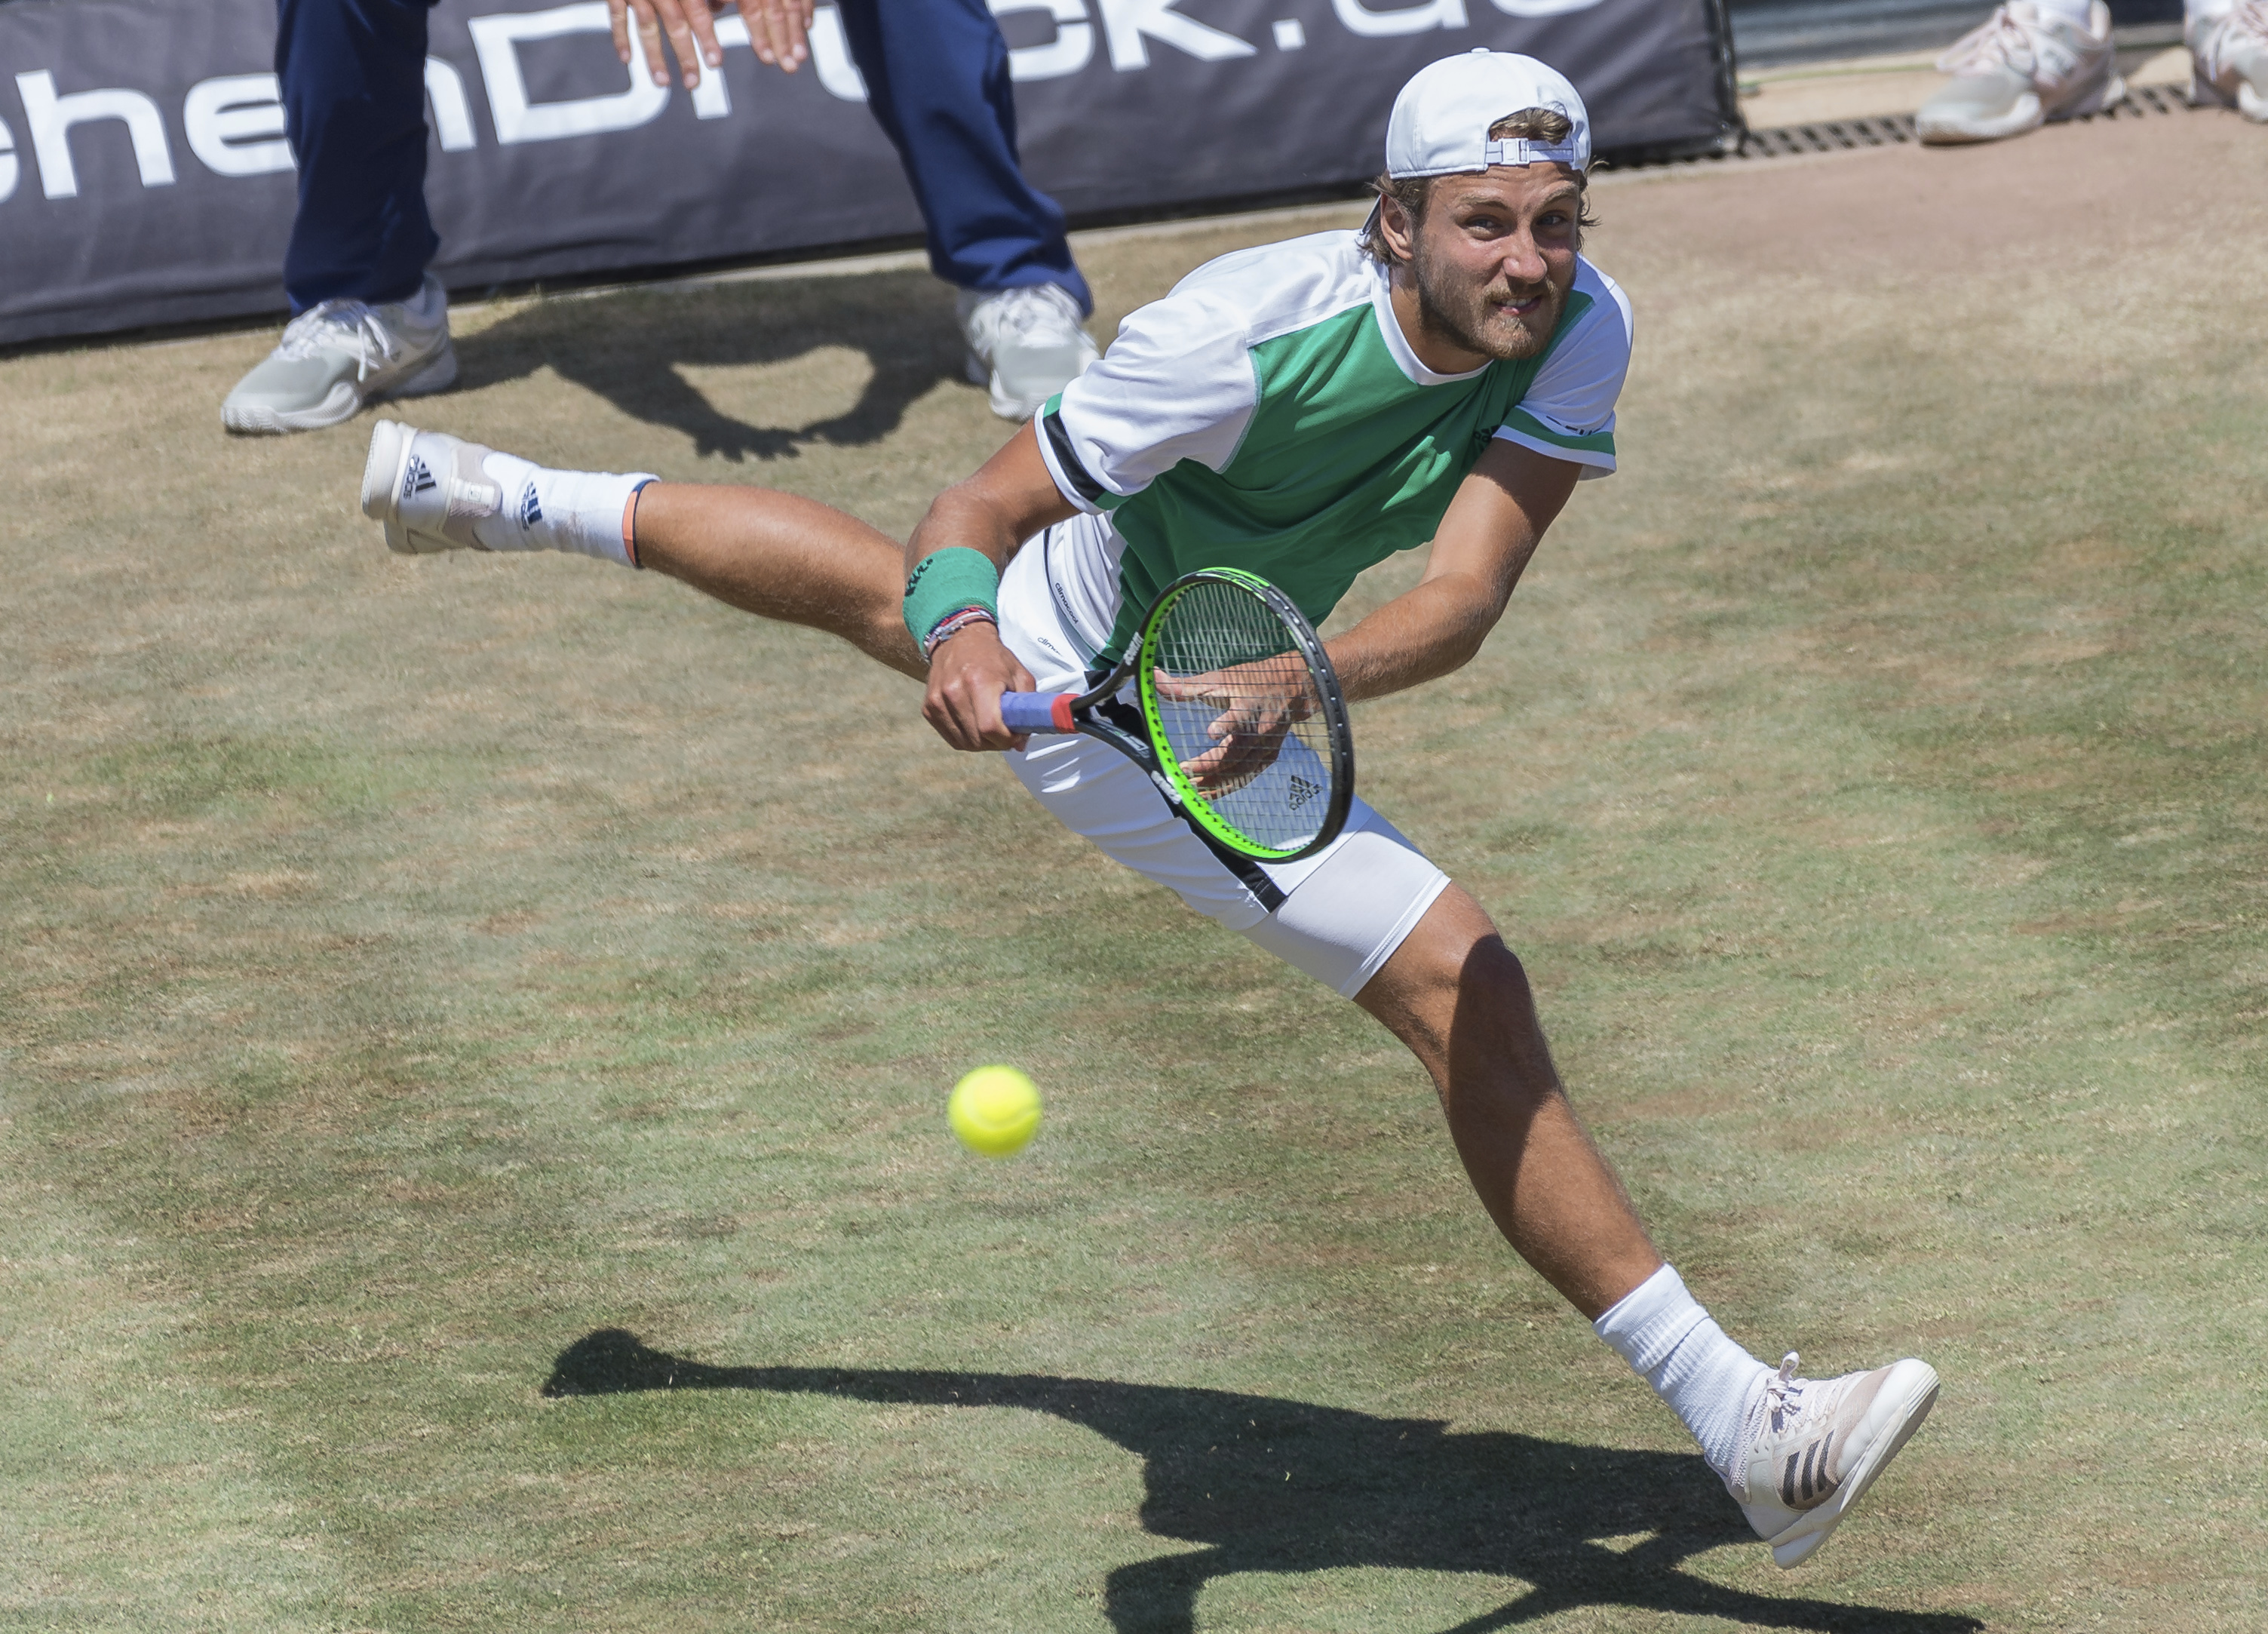 Lucas Pouille from France returns a ball to Feliciano Lopez from Spain during the final of the ATP tennis tournament in Stuttgart, southern Germany, Sunday, June 18, 2017. (Daniel Maurer/dpa via AP)